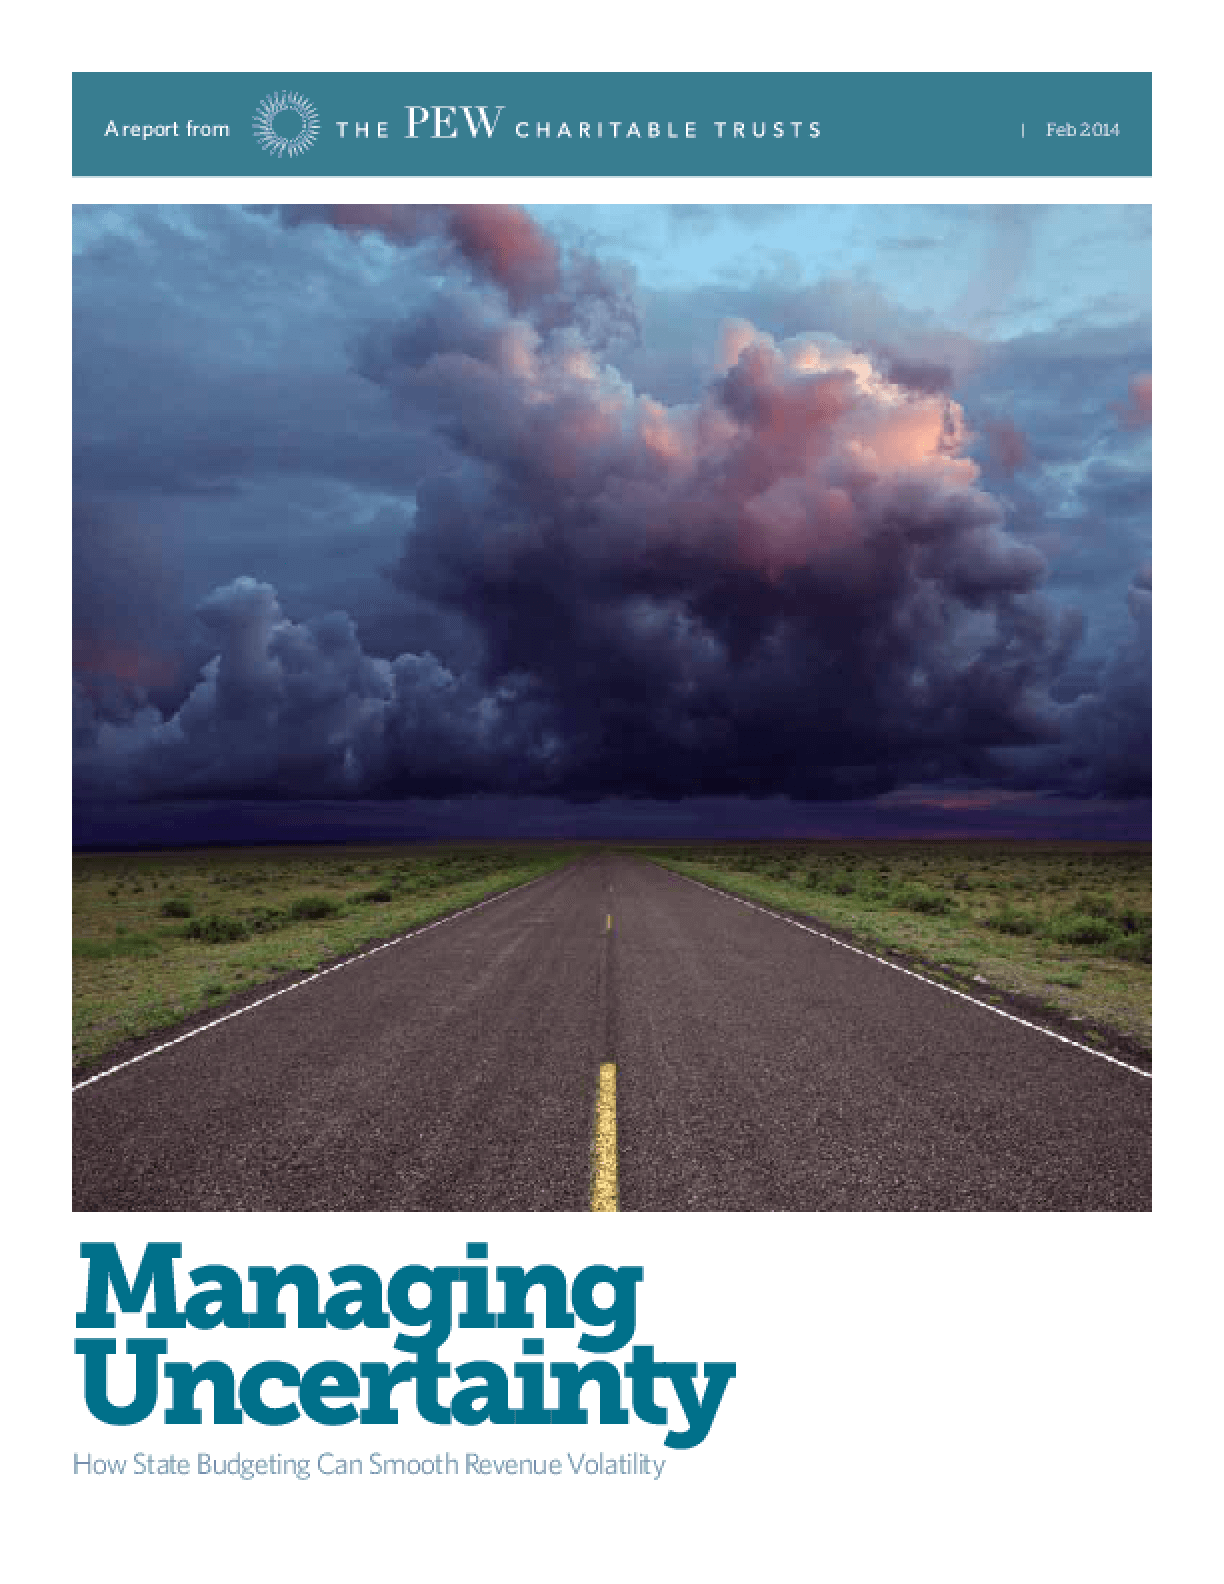 Managing Uncertainty: How State Budgeting Can Smooth Revenue Volatility